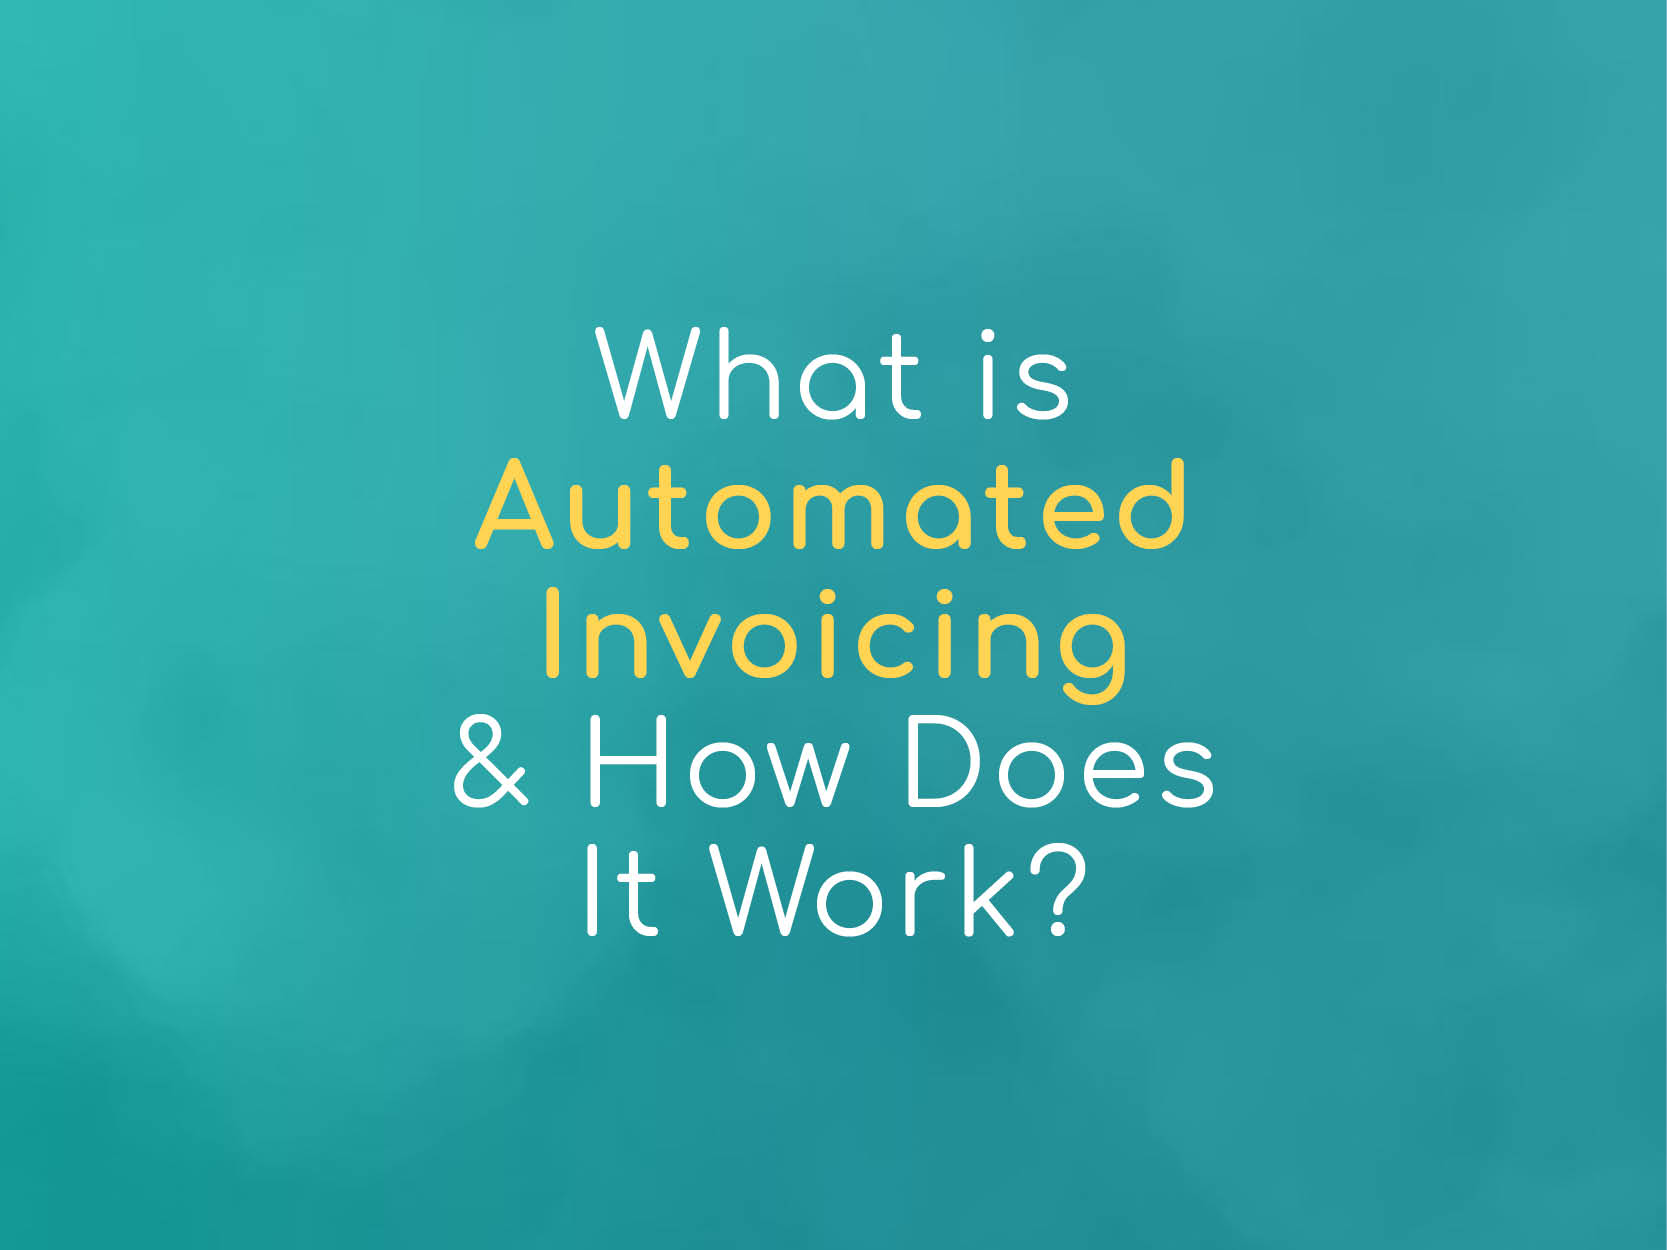 What-is-automated-invoicing-and-how-does-it-work